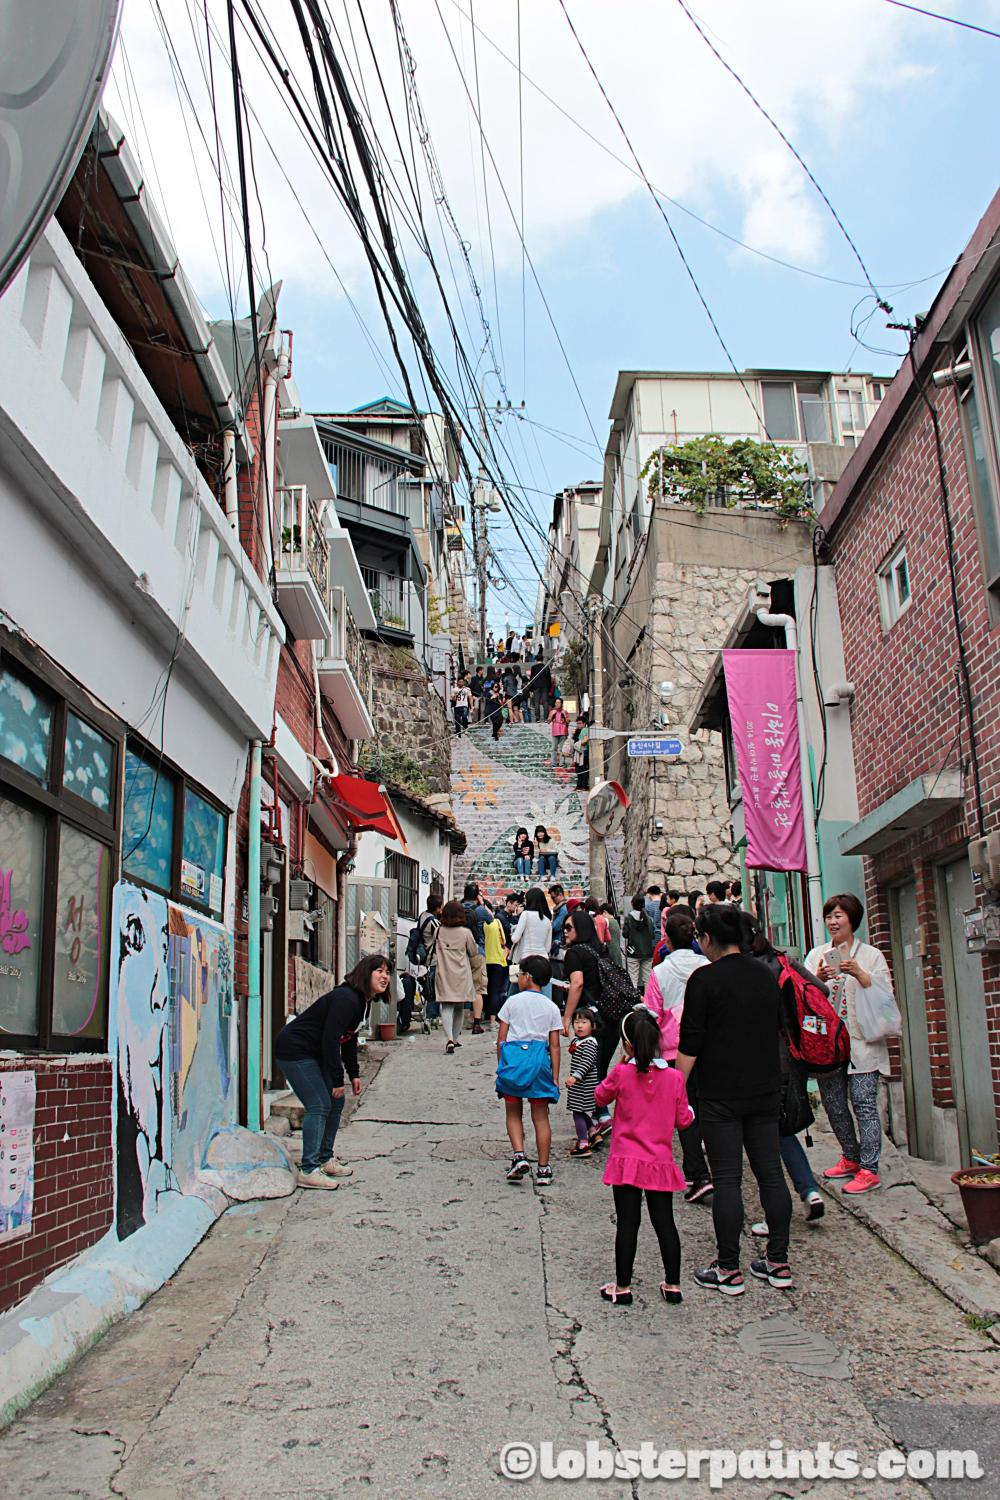 3 Oct 2014: Ihwa Mural Village 이화벽화마을 | Seoul, South Korea